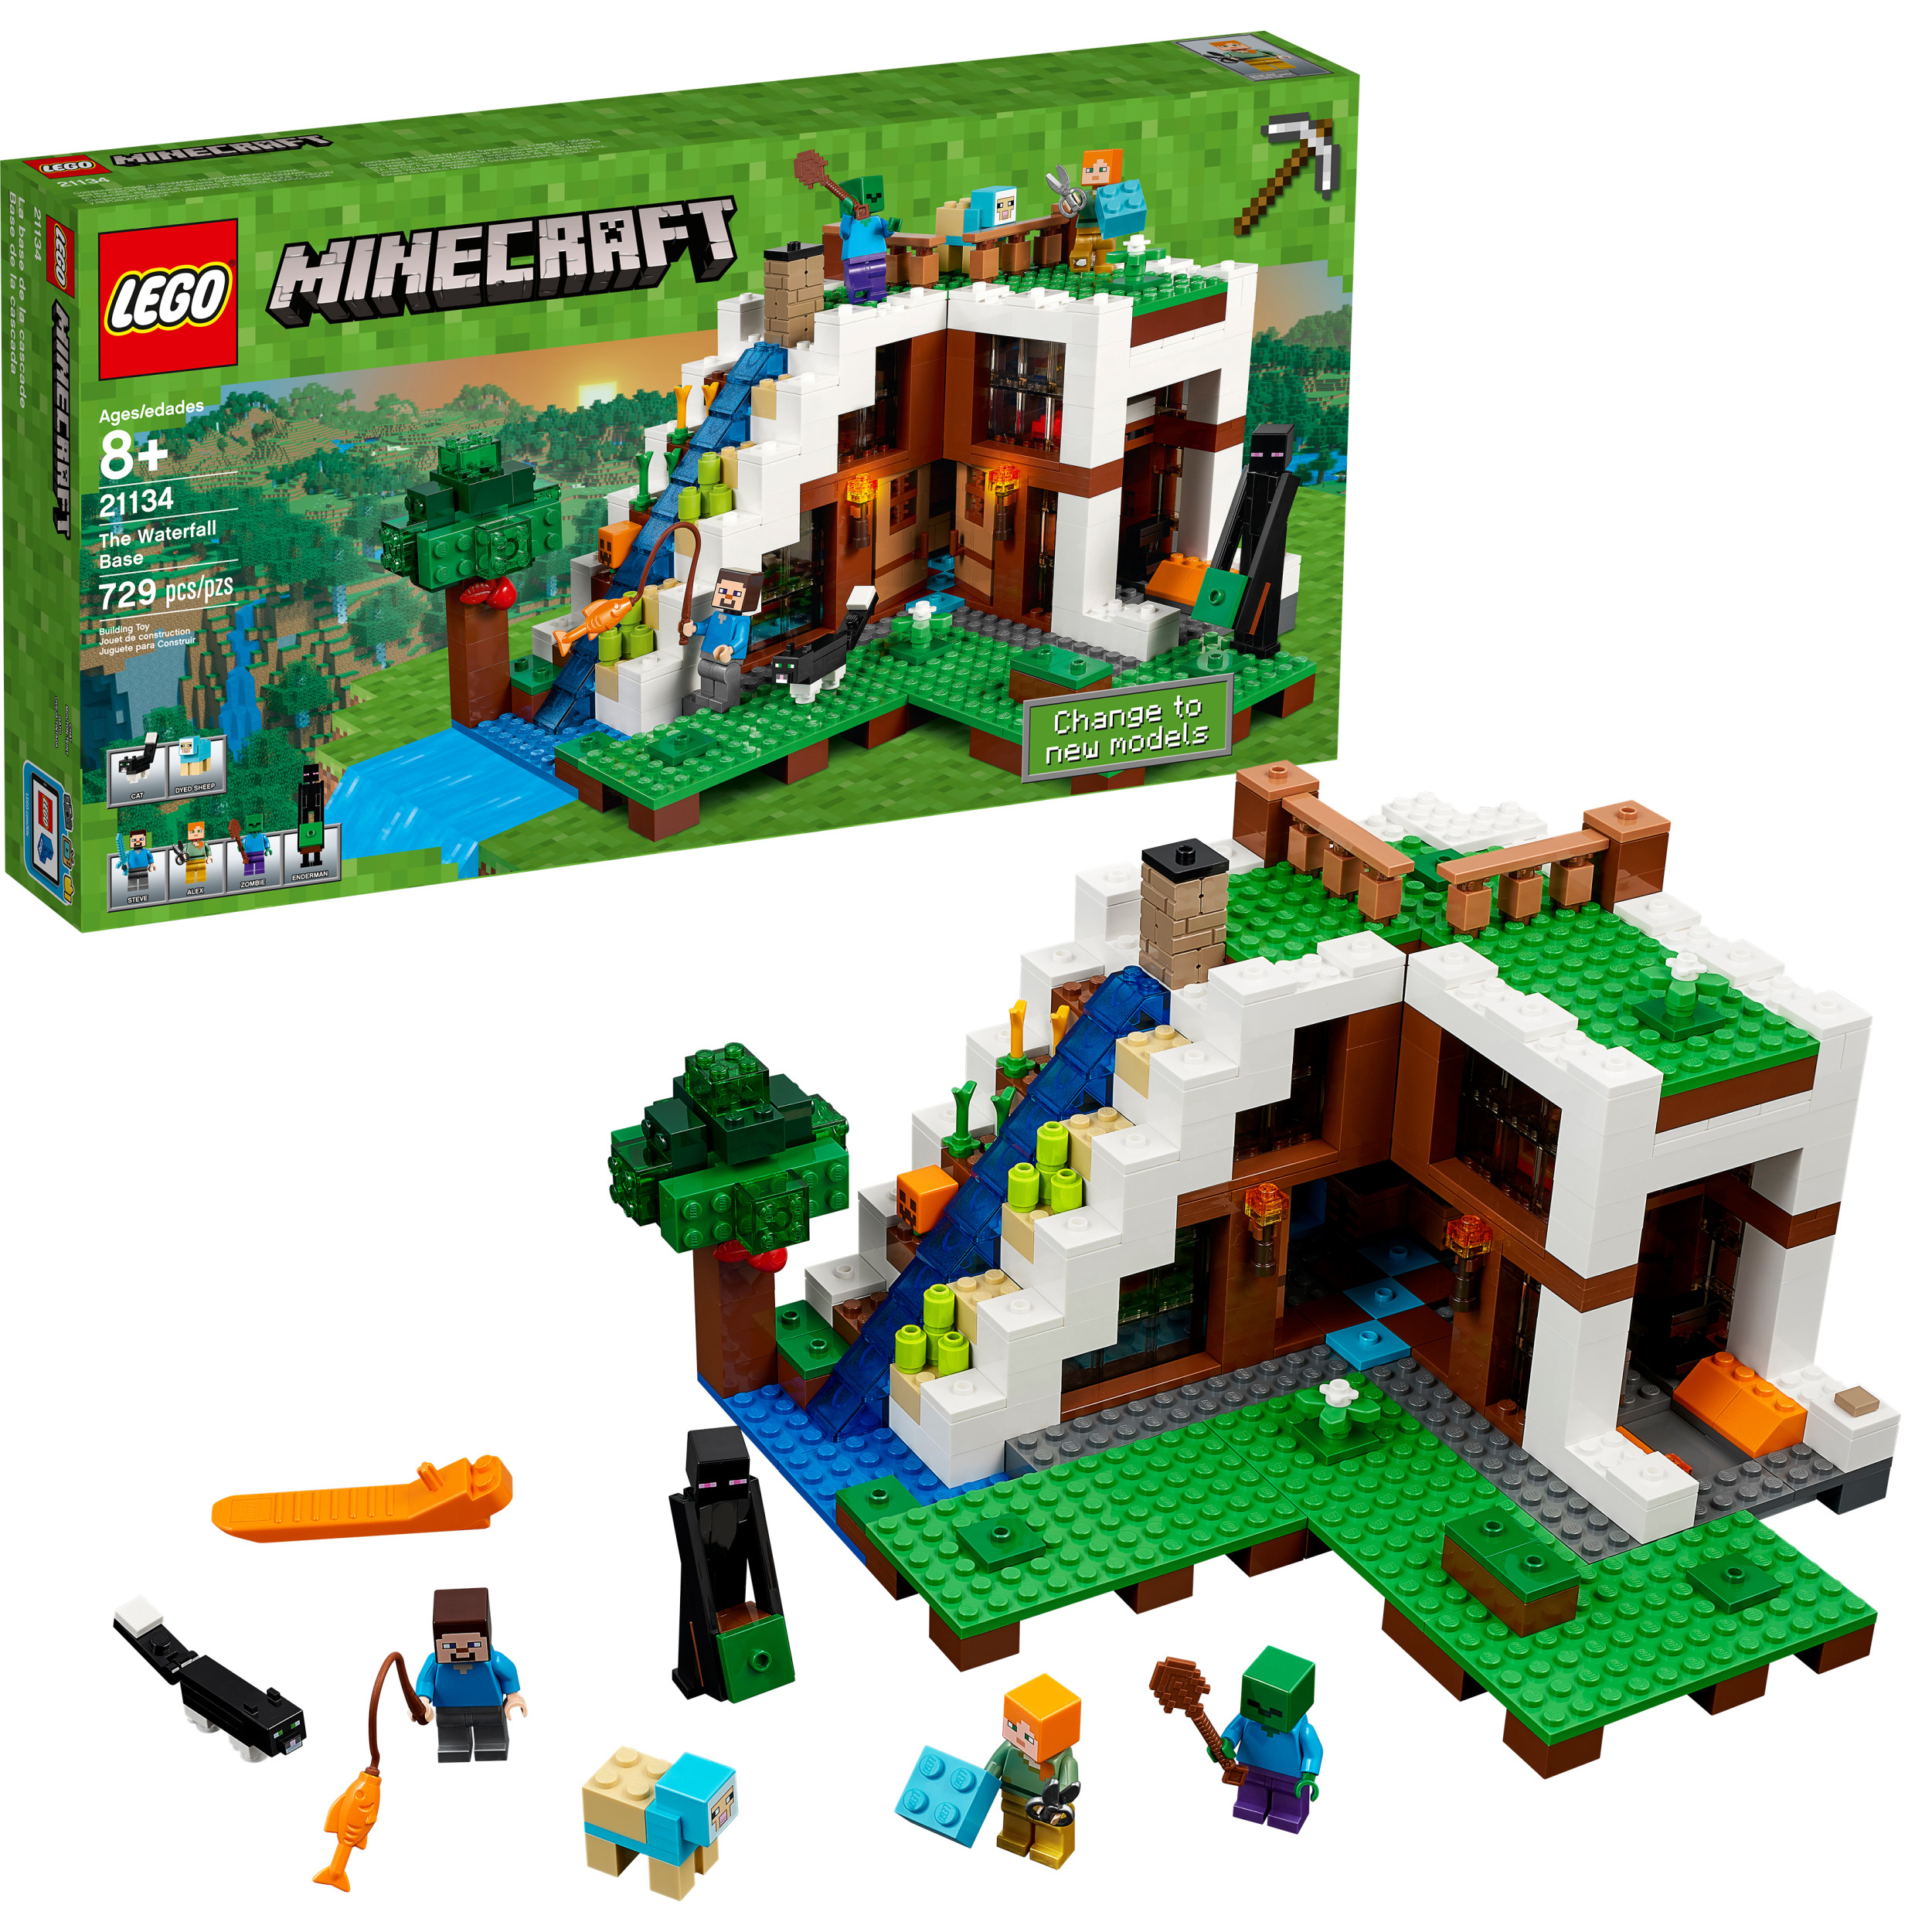 Lego Minecraft The Waterfall Base 21134 by Lego